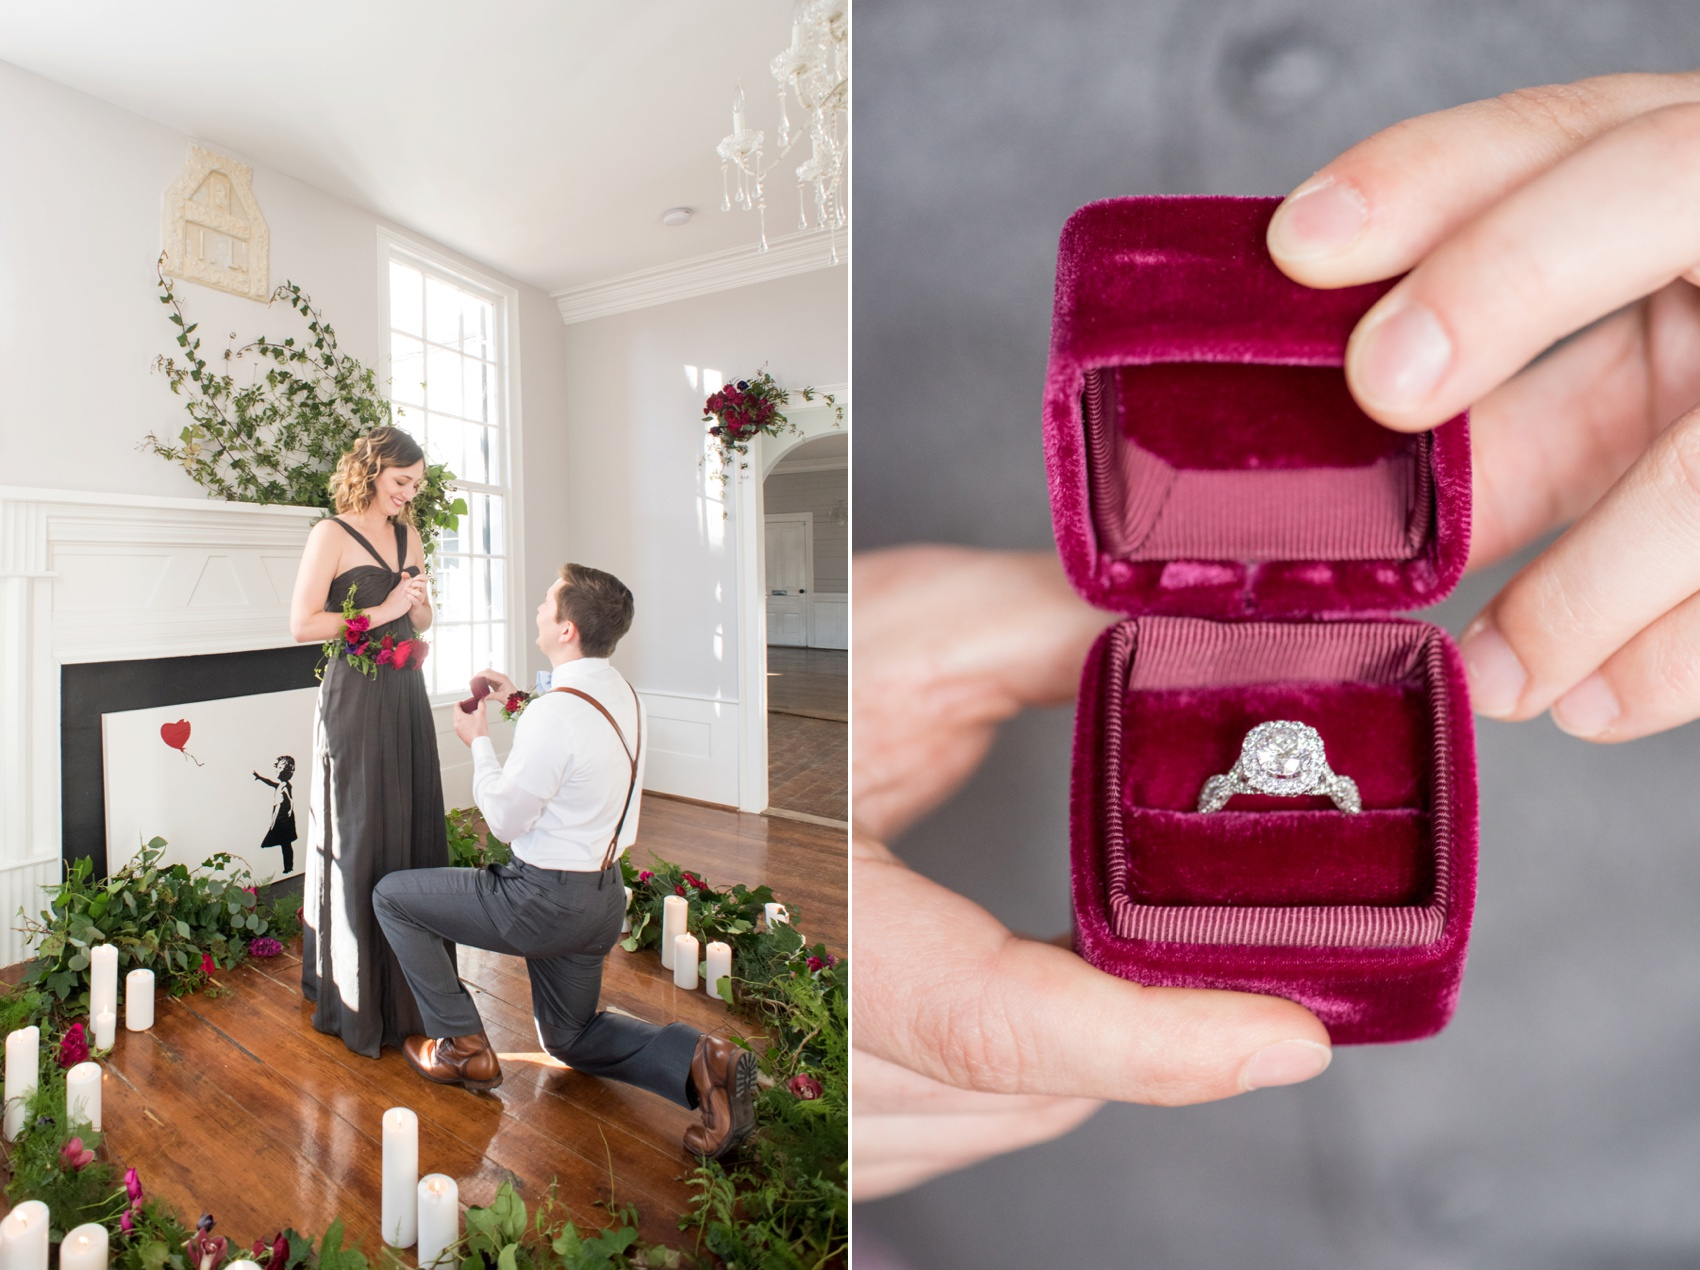 Leslie-Alford Mim's House NC marriage proposal photos by Mikkel Paige Photography. Red velvet diamond ring box.